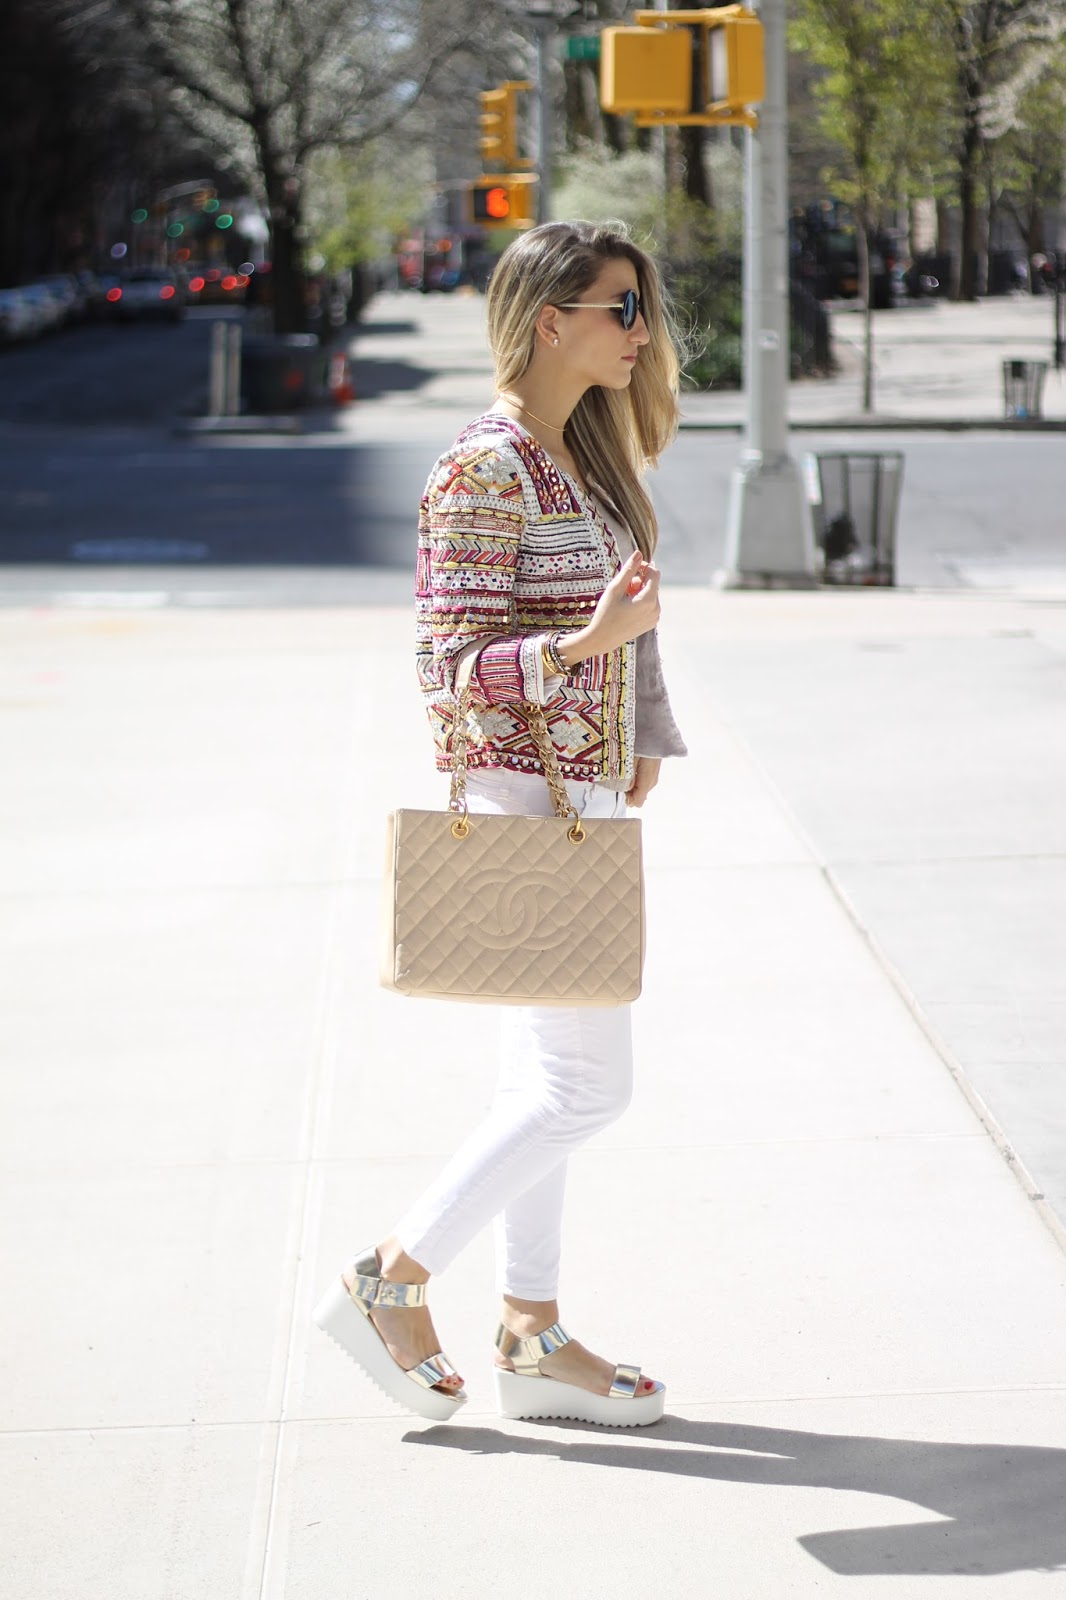 dressed for dreams in, Beige chanel shopper tote